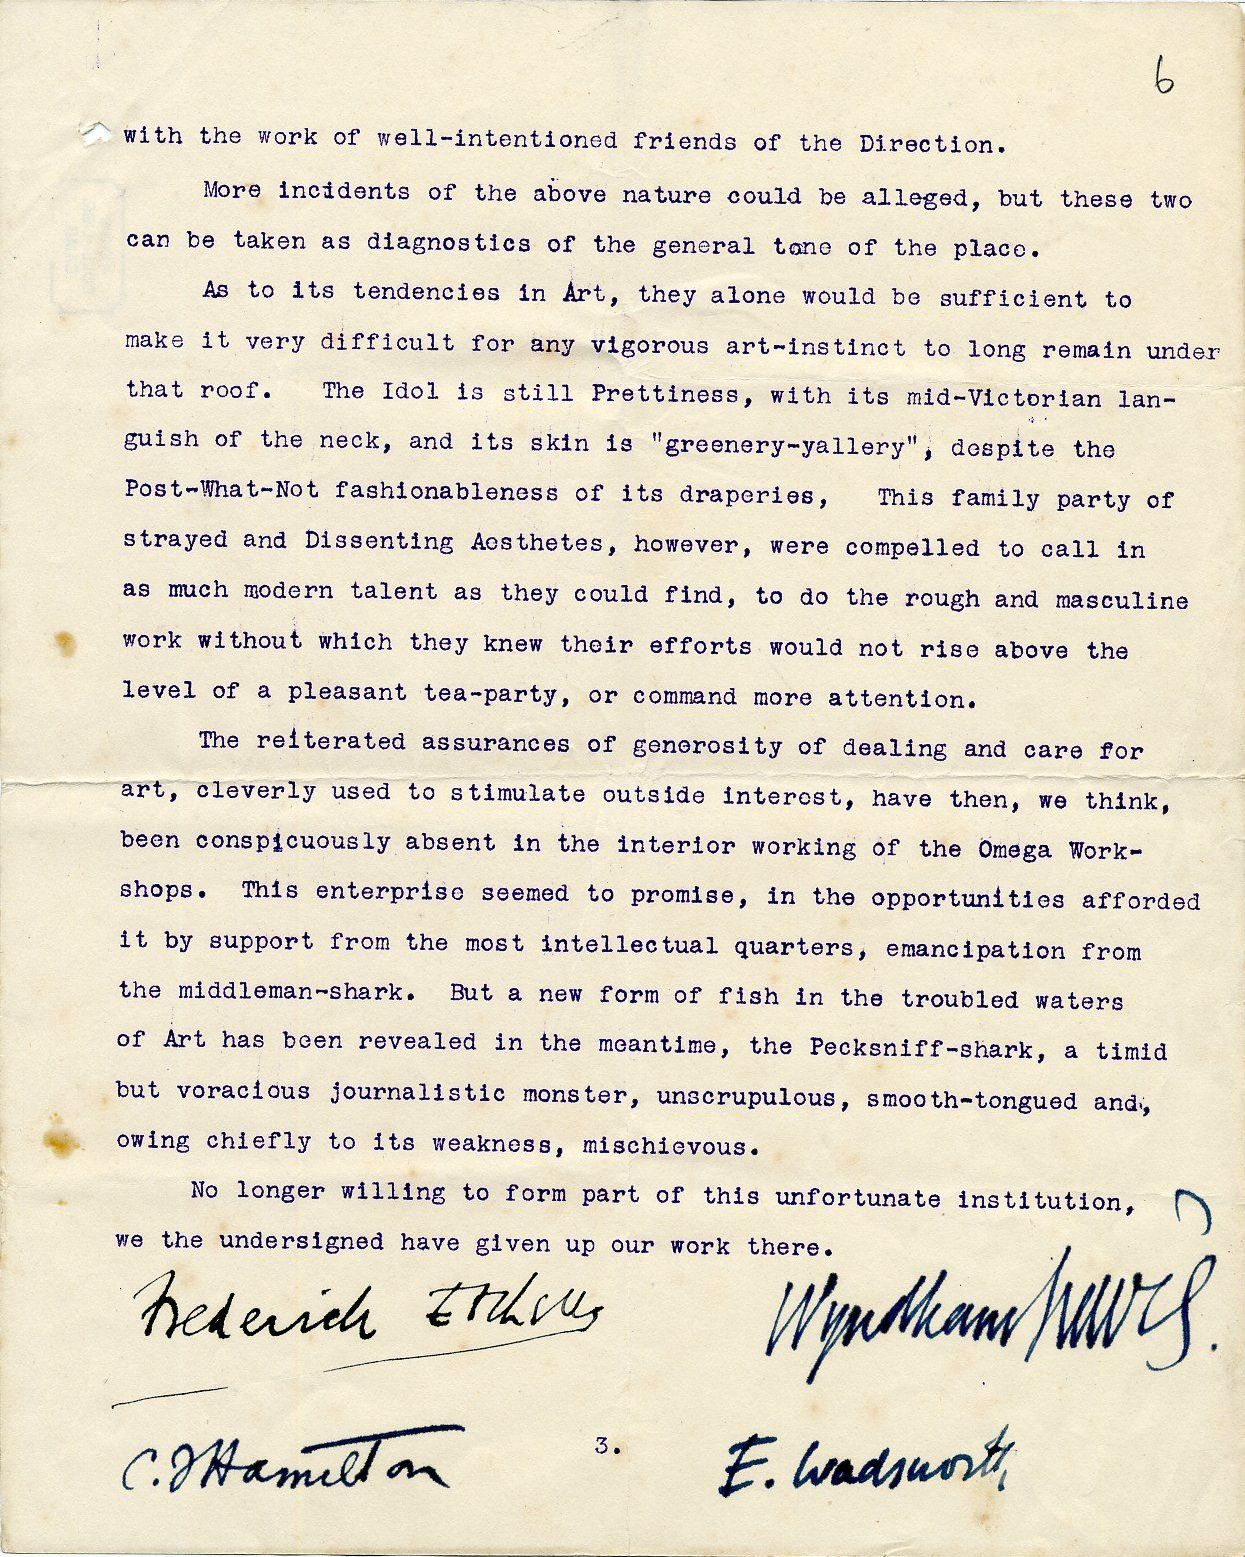 Third page of a round robin signed by Etchells, Hamilton, Wadsworth and Lewis on their dispute with REF, c. October 1913. By permission of the Wyndham Lewis Memorial Trust (a registered charity). [REF/3/92]